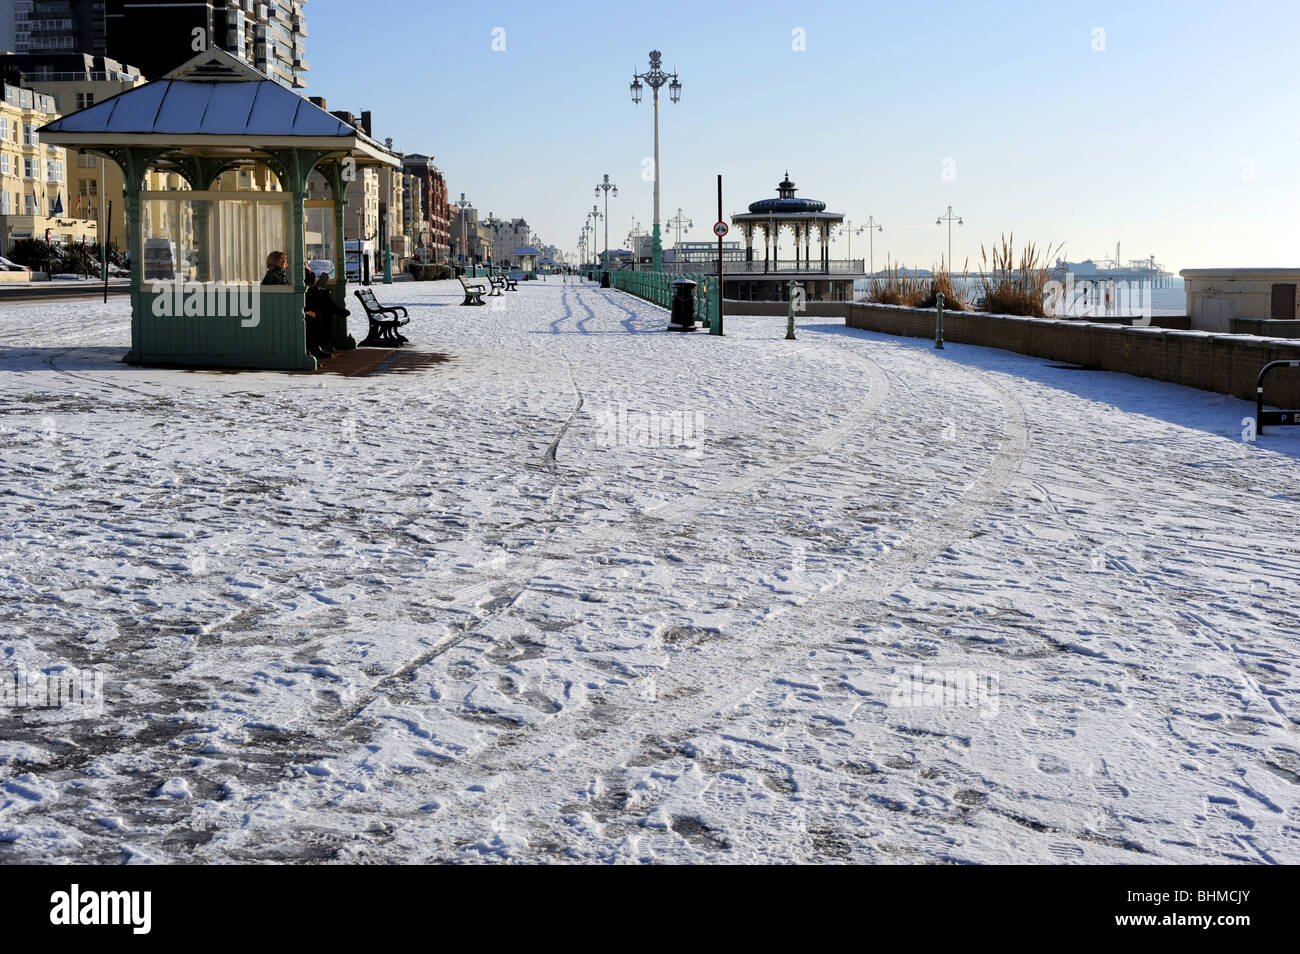 Brighton seafront deserted after heavy snow - Stock Image